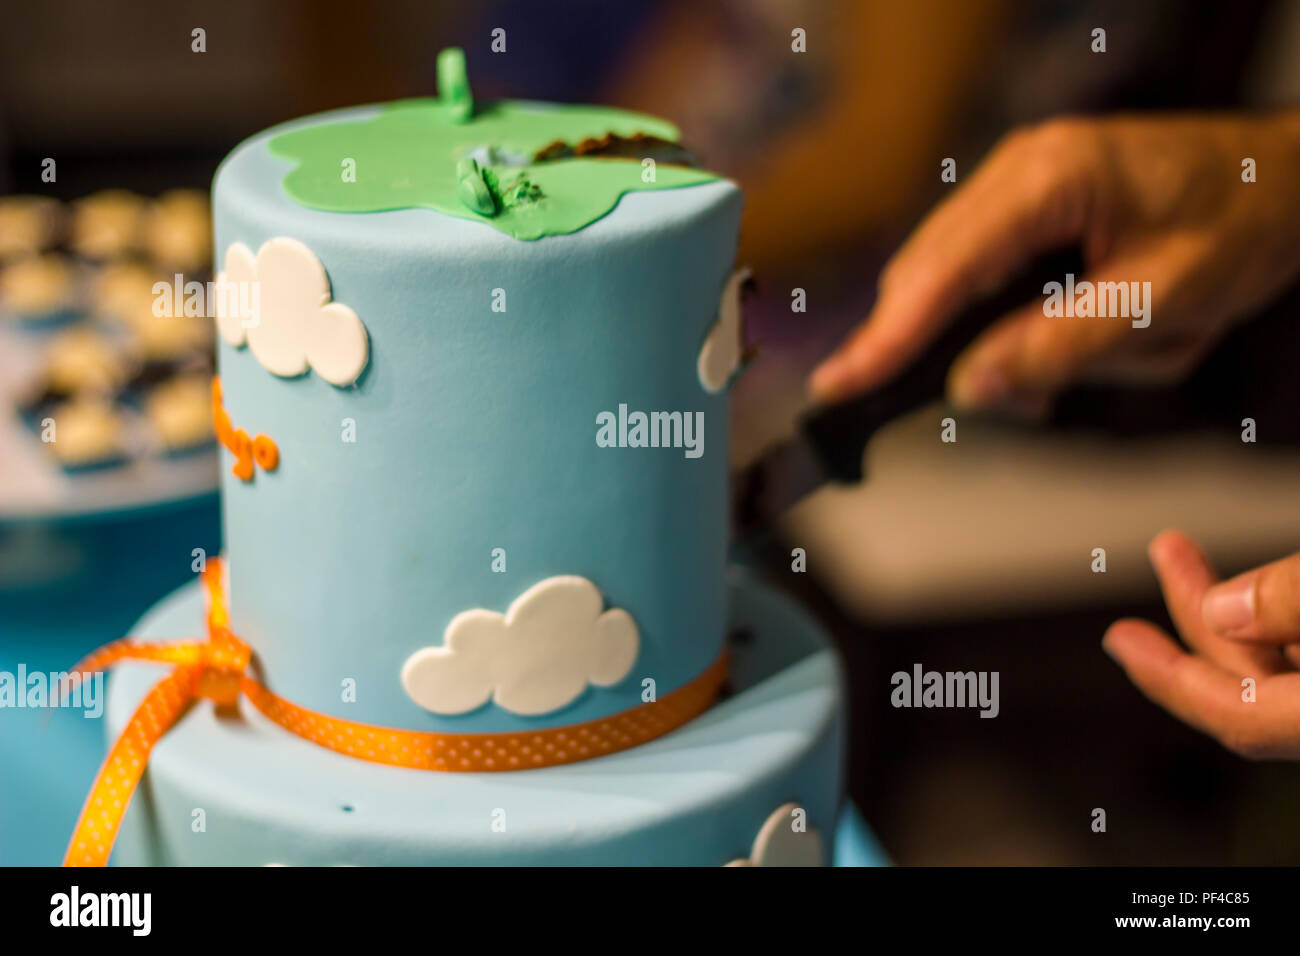 Fabulous Men Hands Cutting With Knife Peace Of Birthday Cake Stock Photo Personalised Birthday Cards Cominlily Jamesorg